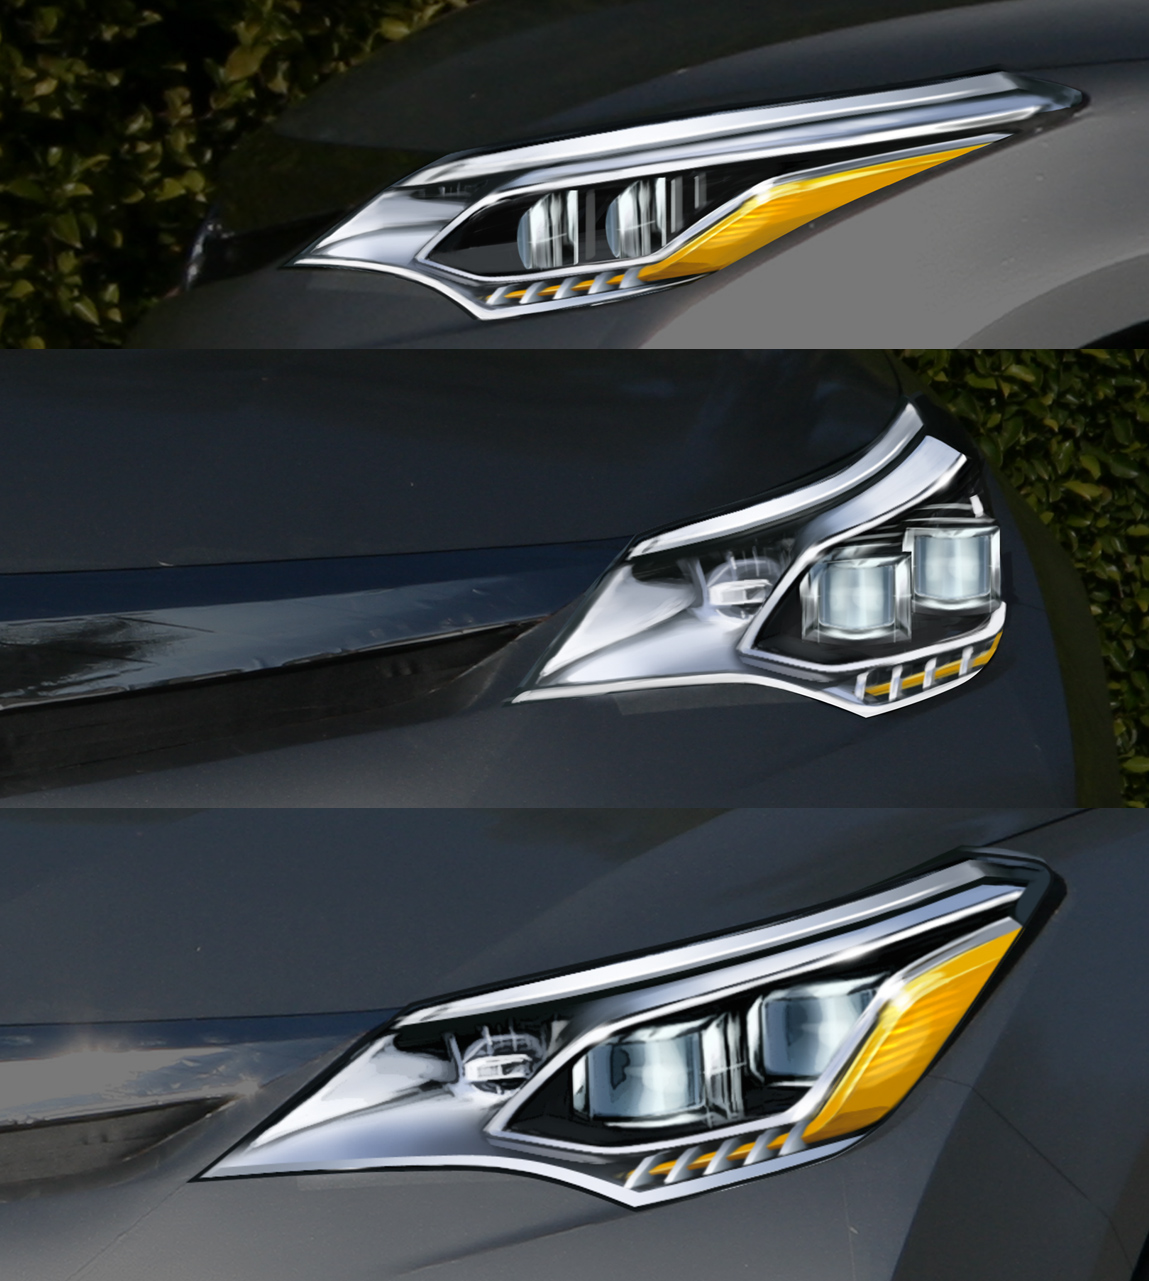 Headlight2.jpg